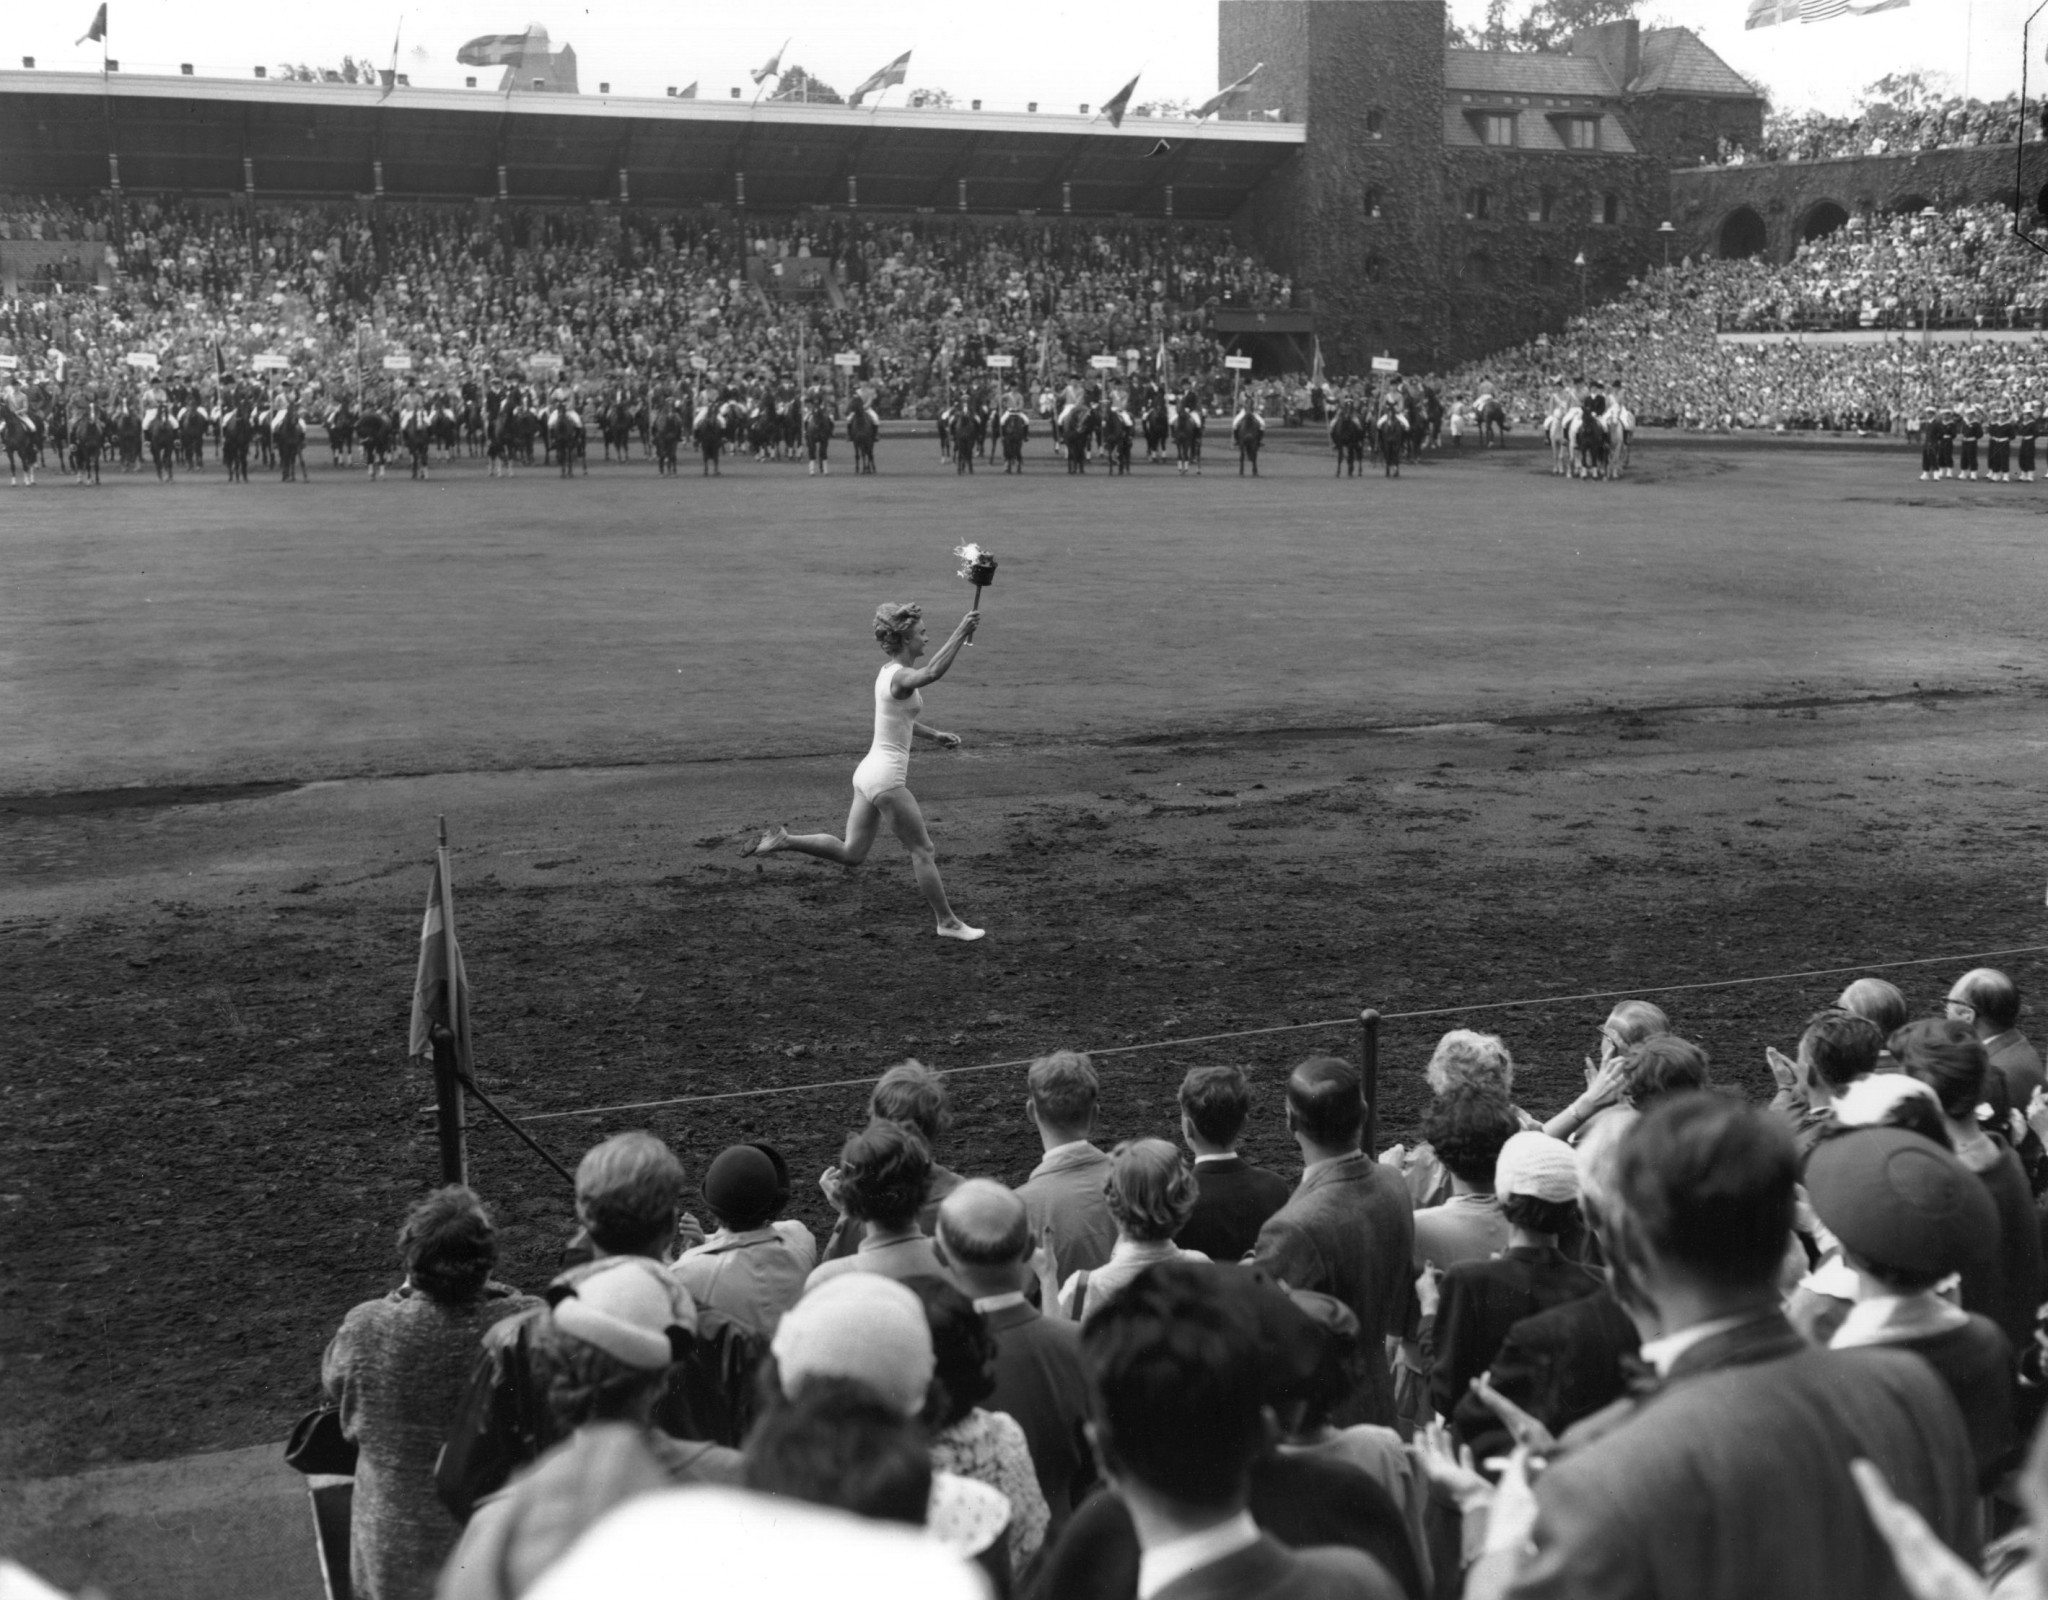 1952 gymnastics champion Karin Lindberg was the first woman to carry an Olympic Flame in the stadium ©Getty Images